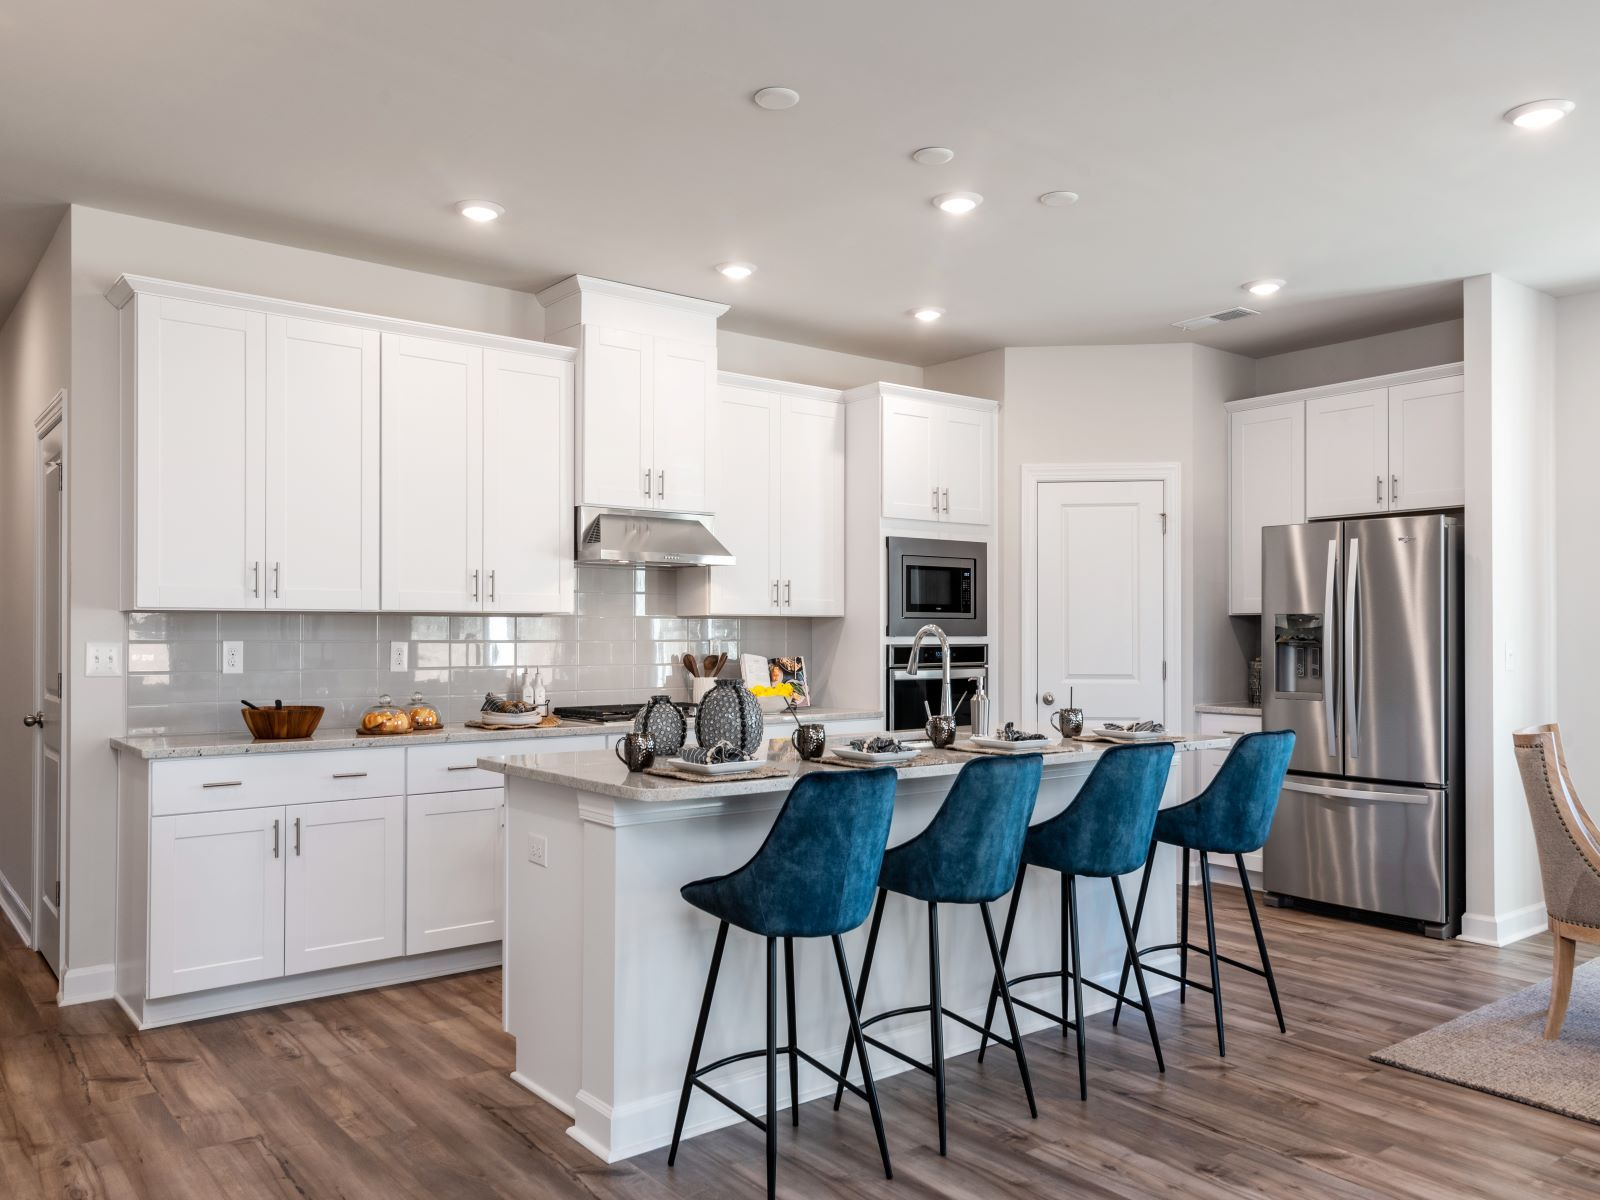 Kitchen featured in the Gibson By Meritage Homes in Charlotte, NC